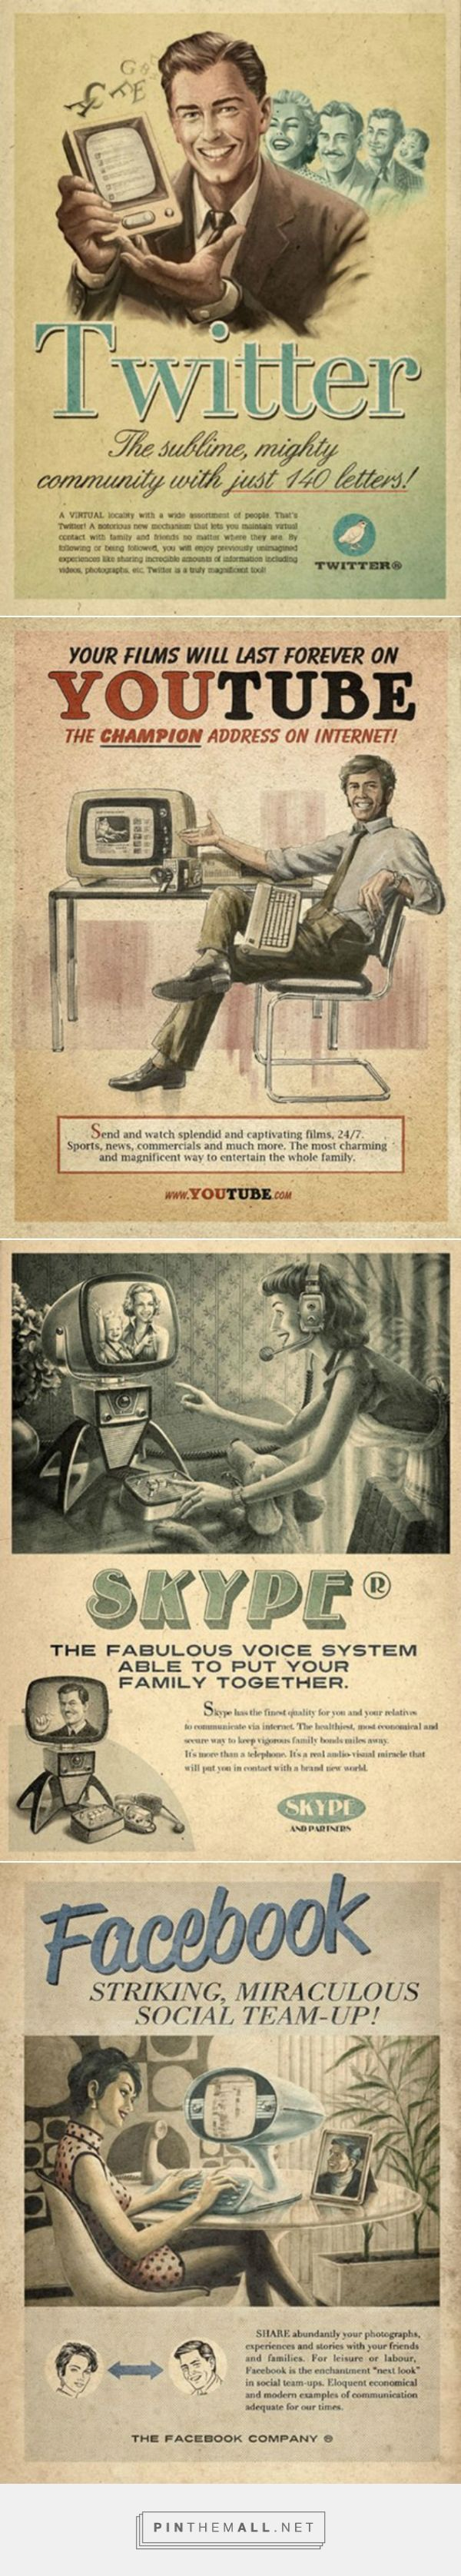 """Sao Paulo ad agency Moma Propaganda created a wonderful series of retro future ads for Facebook, Twitter, YouTube and Skype as part of the """"Everything Ages Fast"""" ad campaign for Maximidia Seminars."""